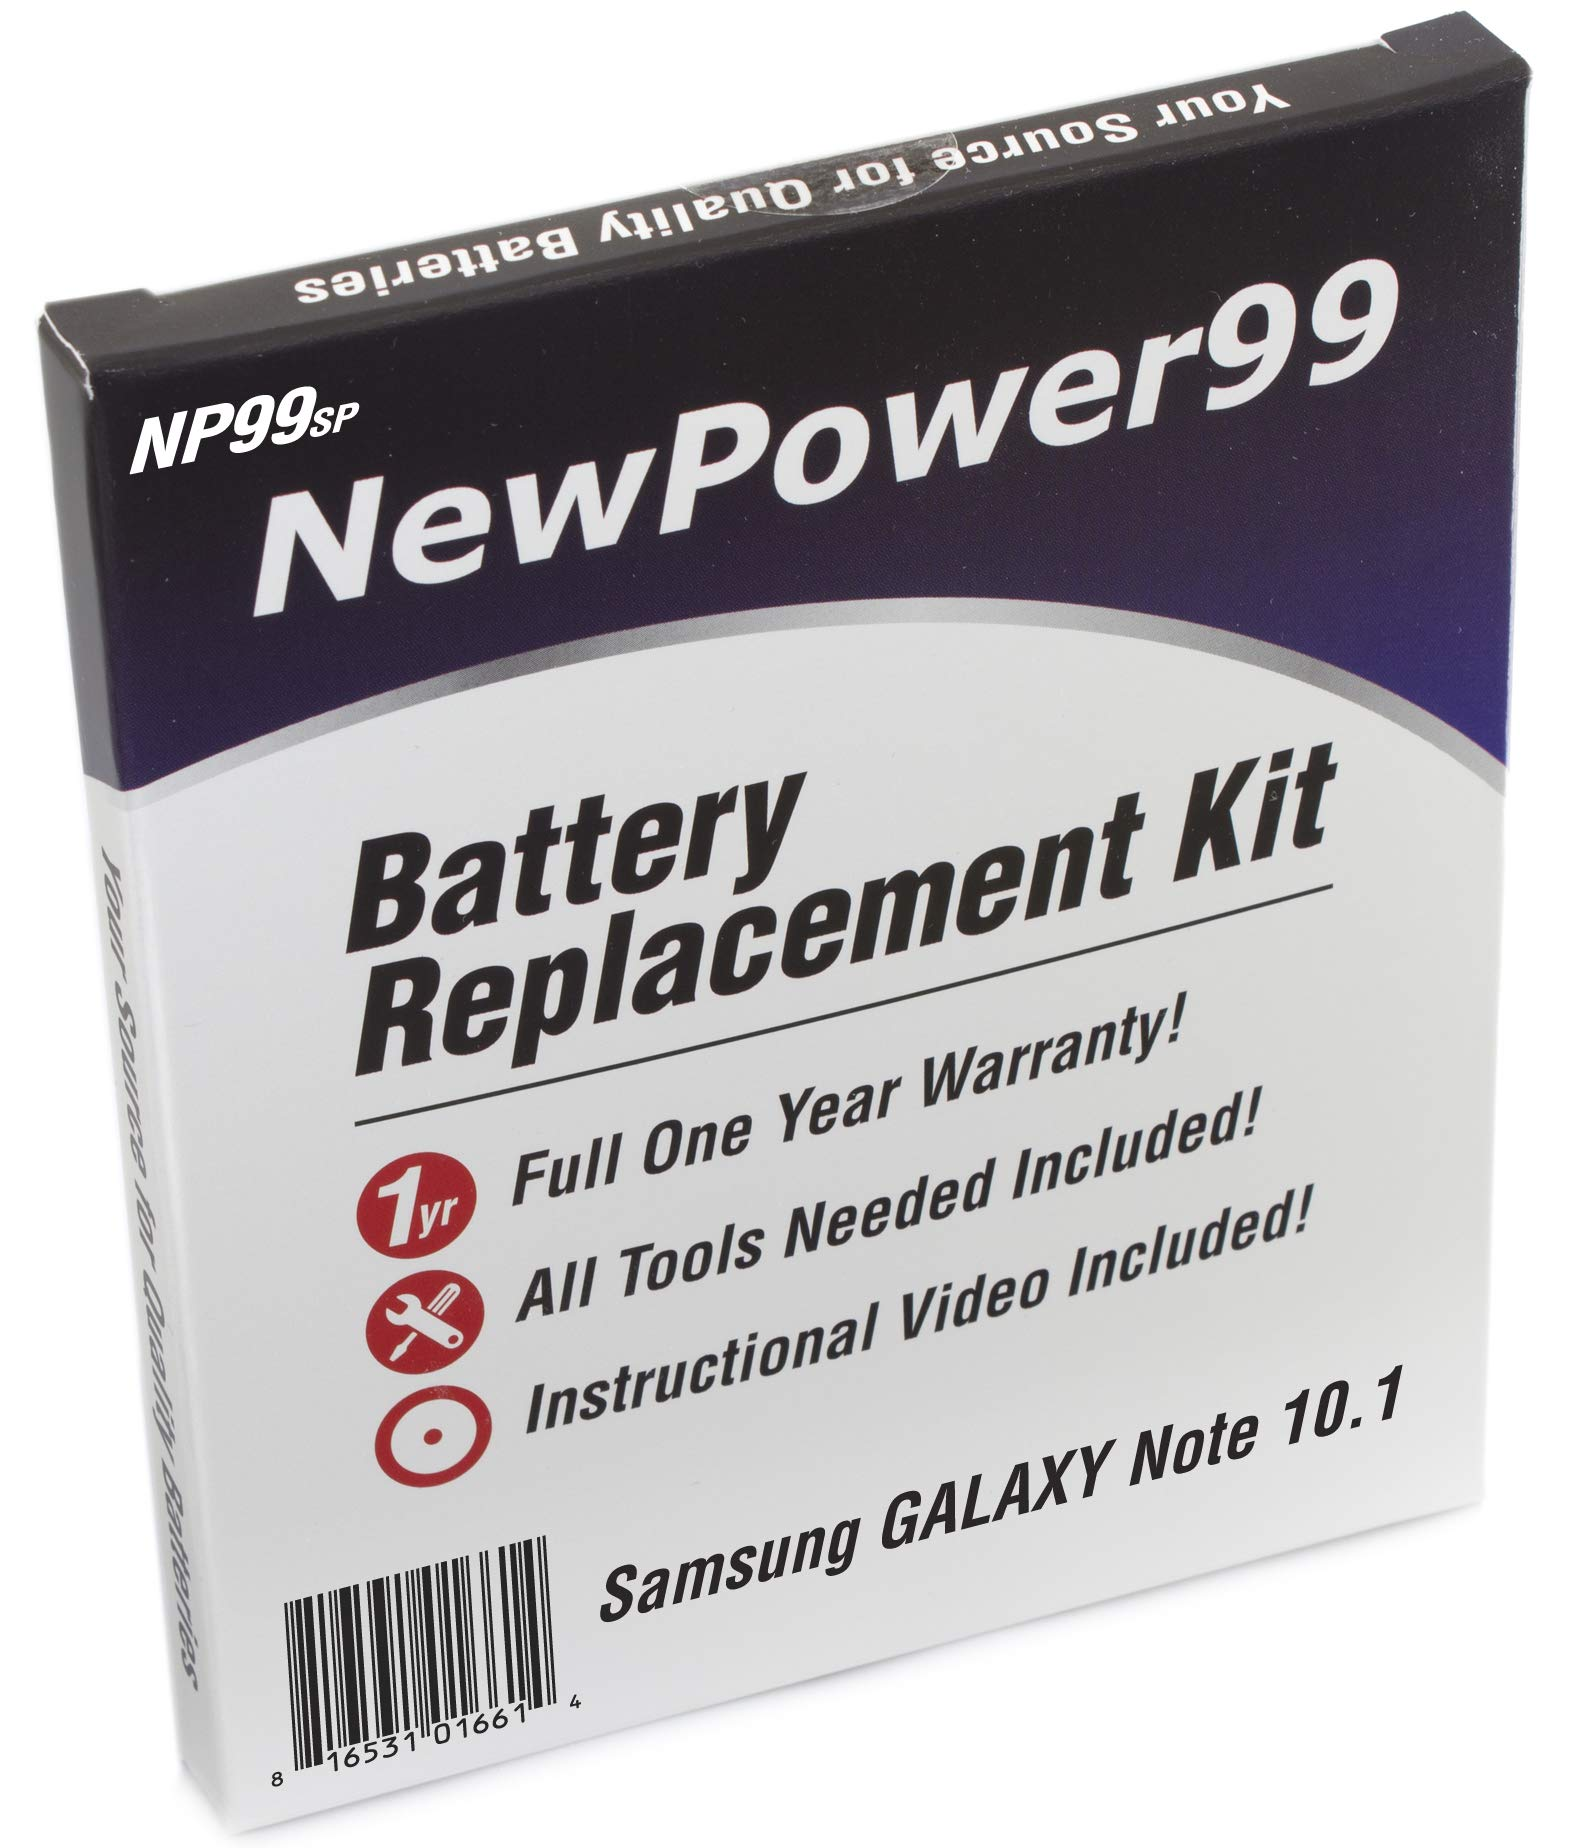 Battery Kit with Tools, Video and Battery for Samsung Galaxy Note 10.1 GT-N8000, GT-N8010, GT-N8013, GT-N8020 from NewPower99